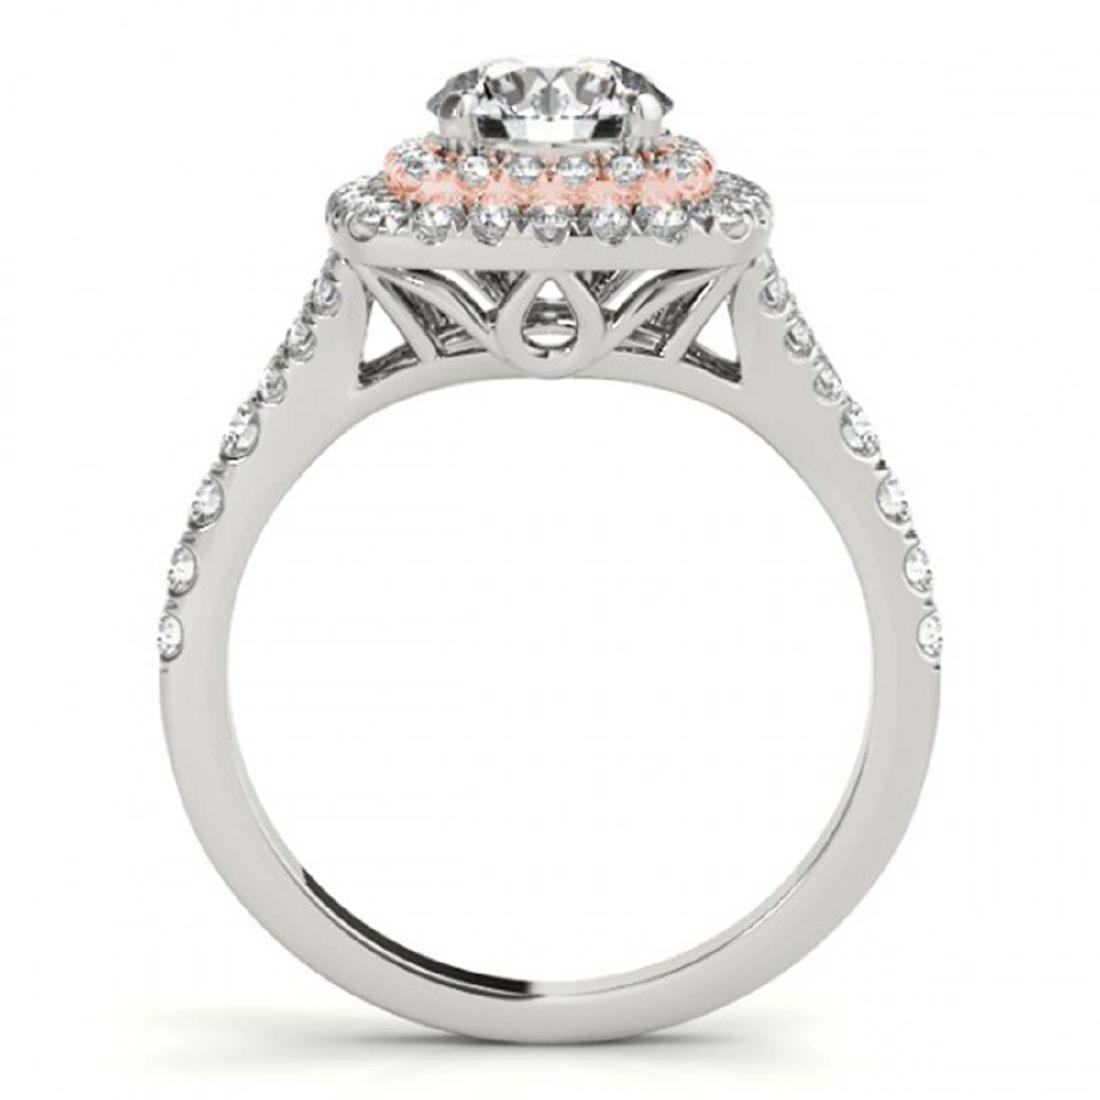 1.60 ctw VS/SI Diamond Solitaire Halo Ring 18K White & - 2